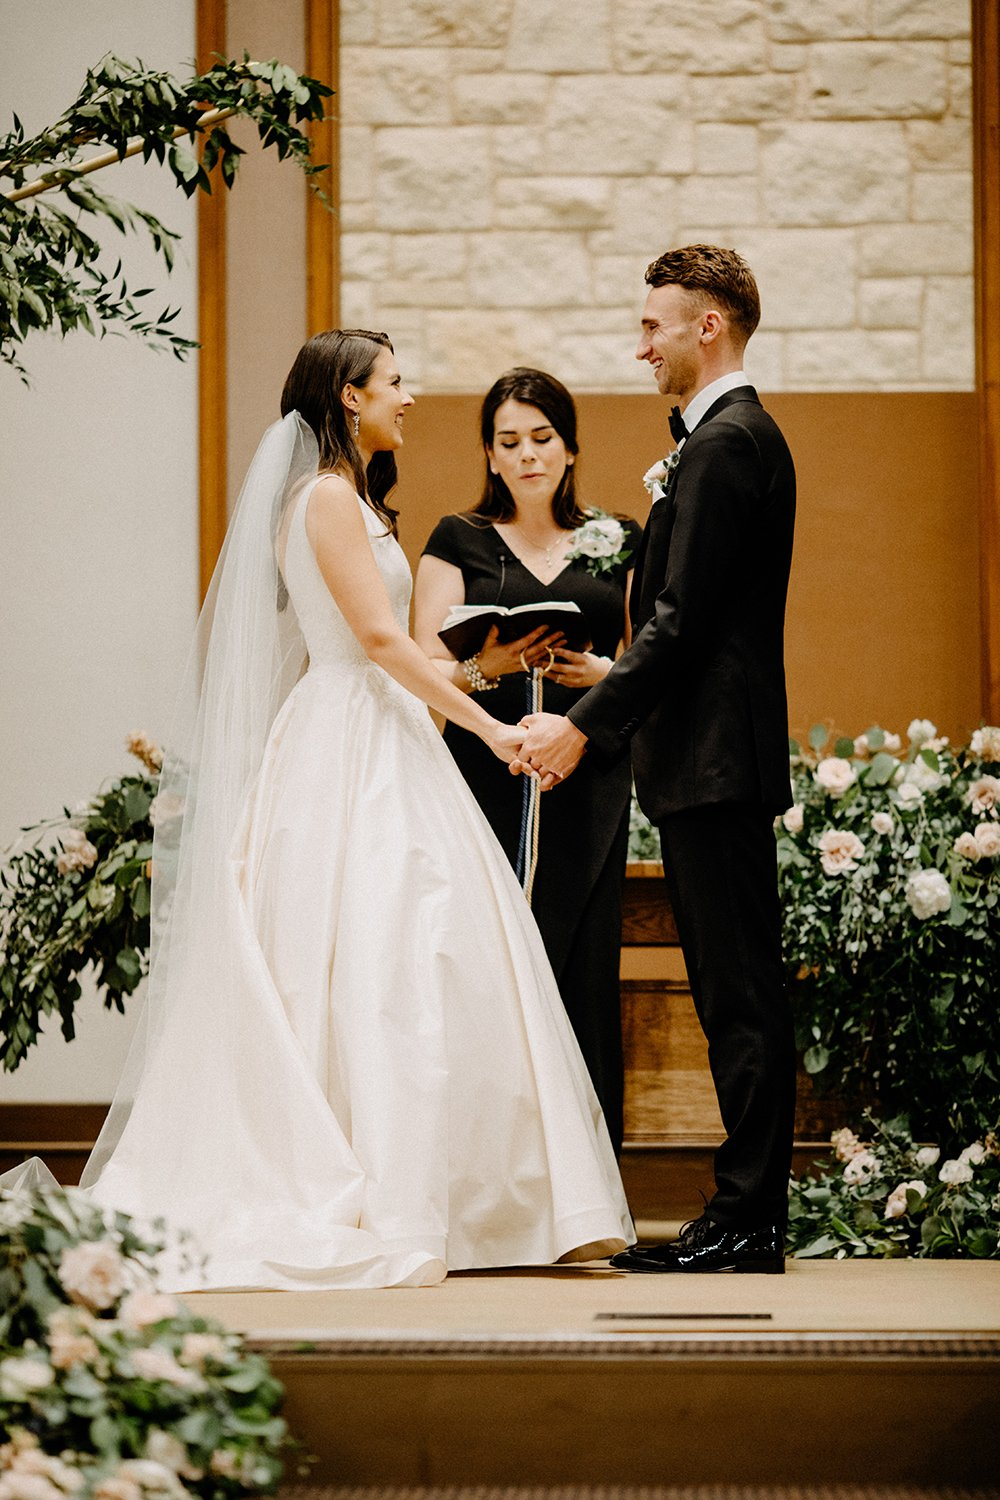 wedding - church ceremony - bride - groom